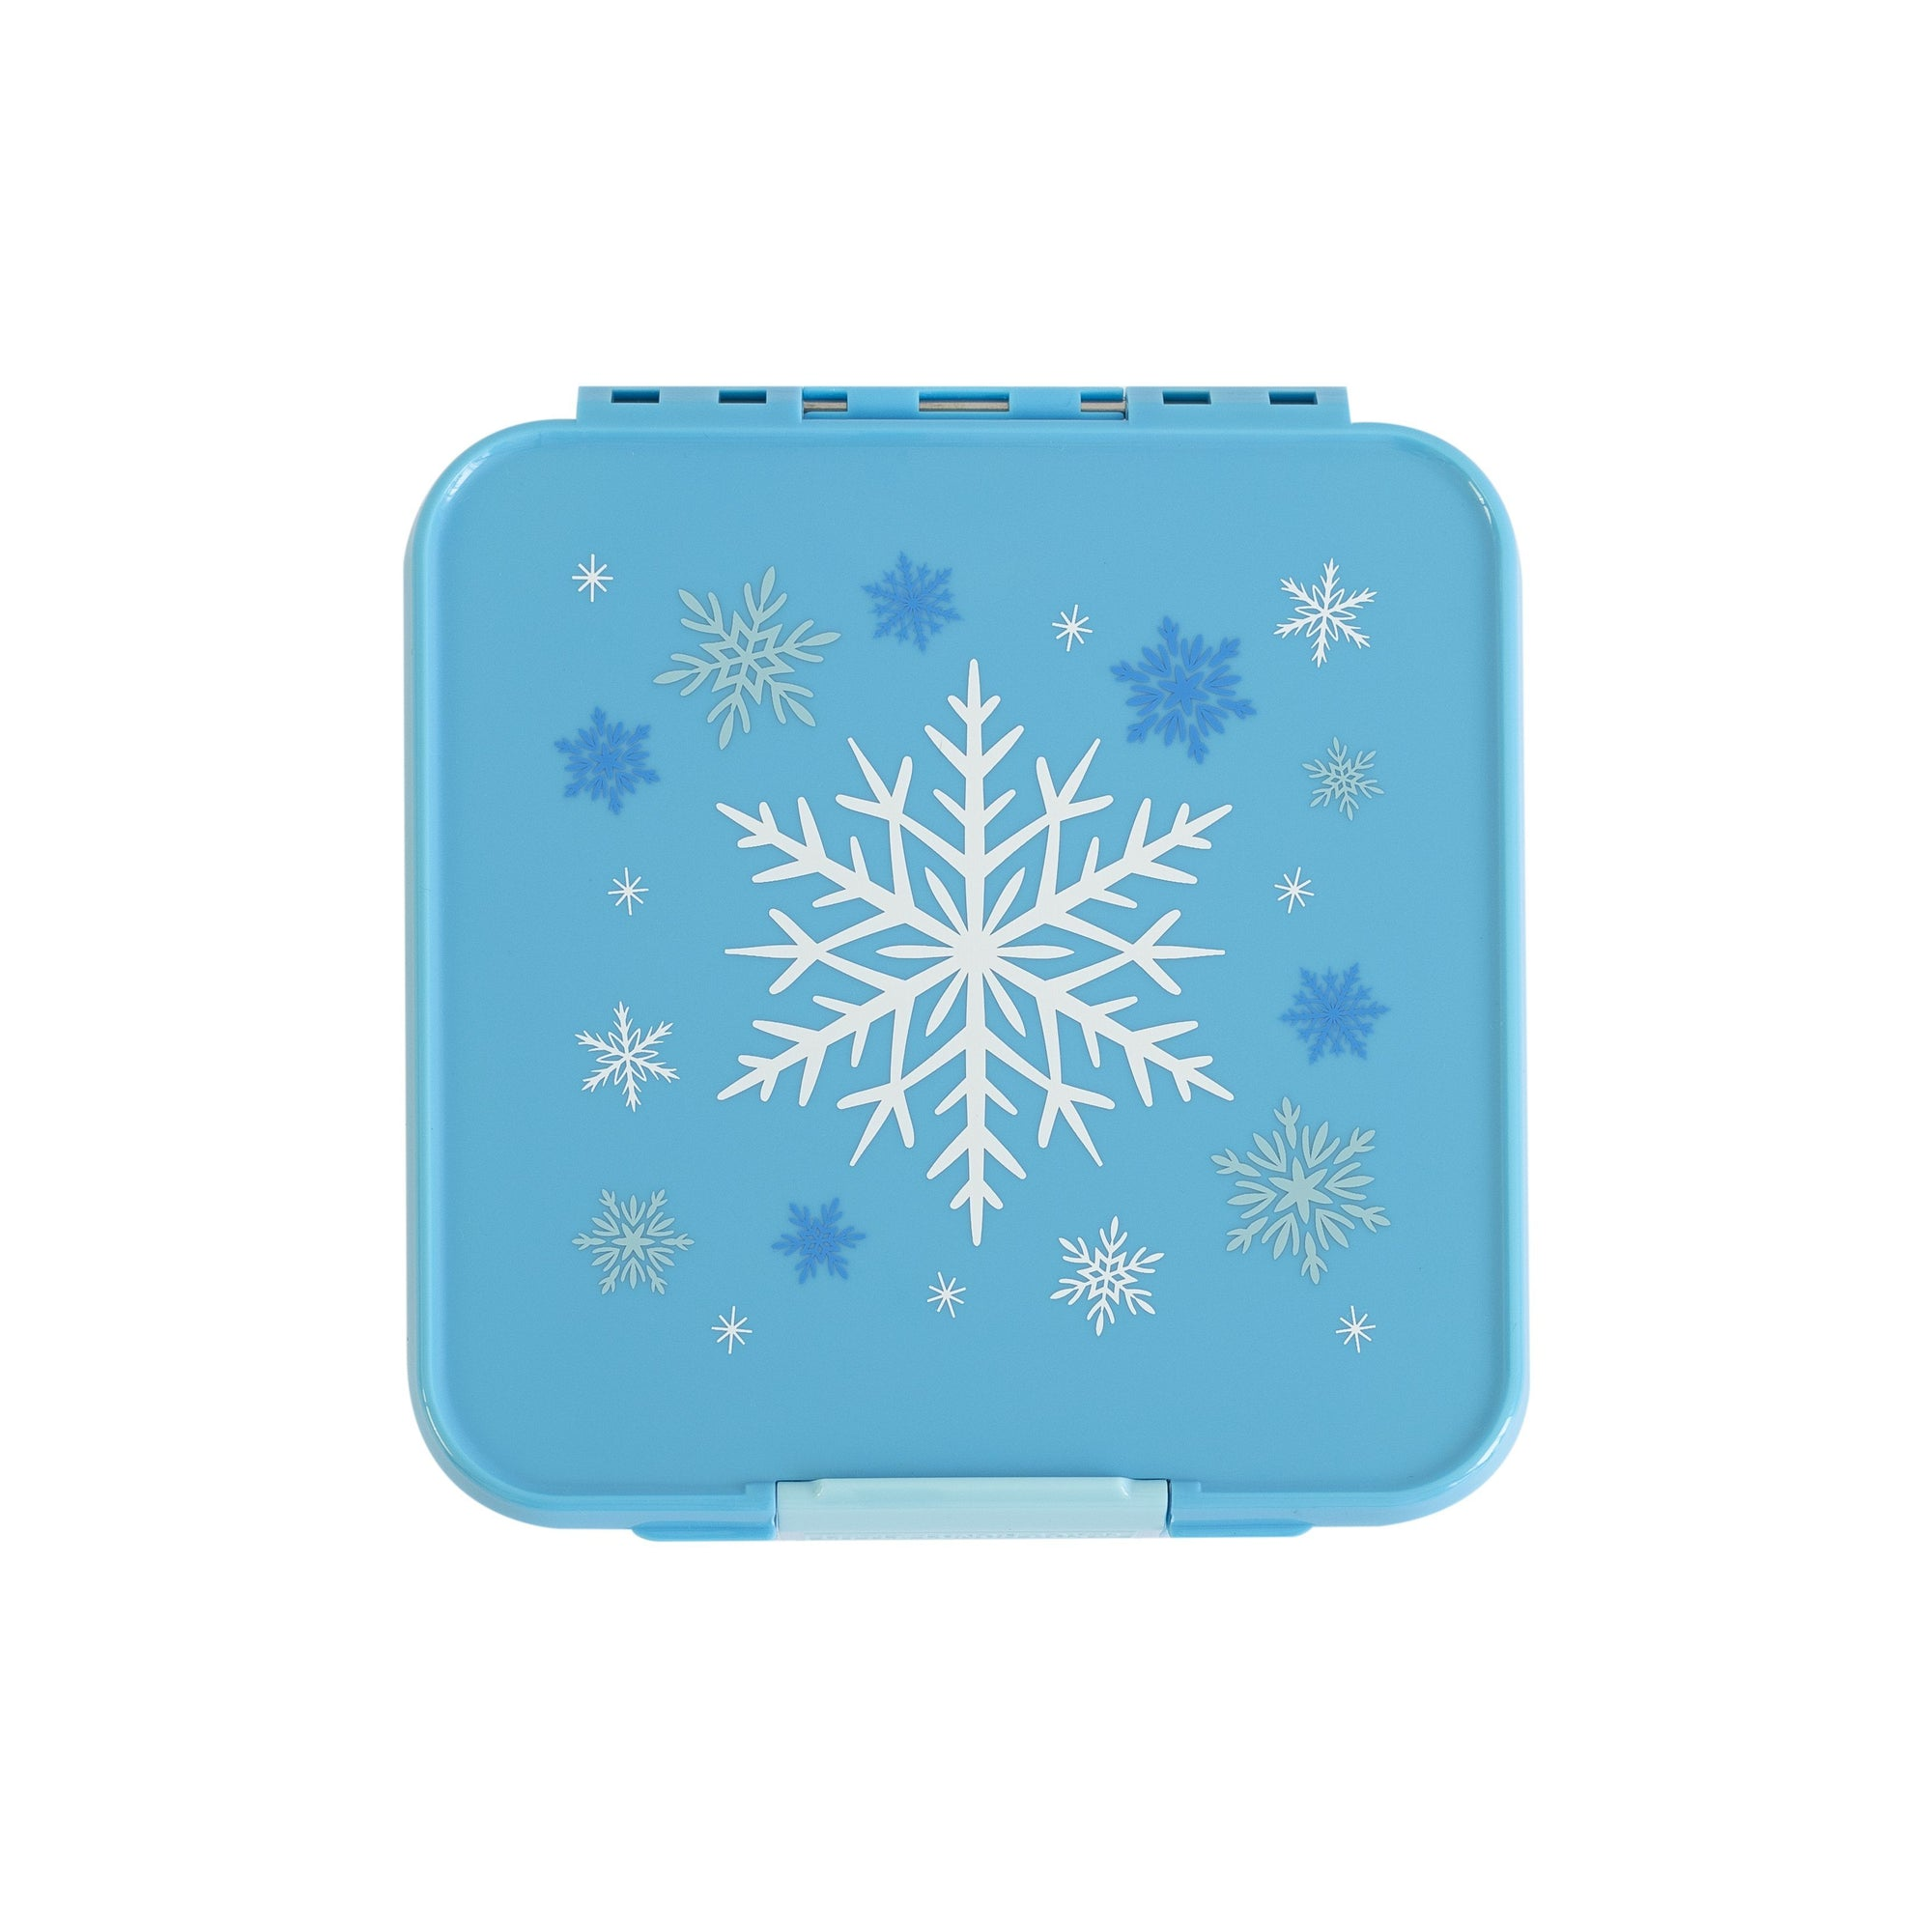 Bento Three Lunch Box (Snowflake)